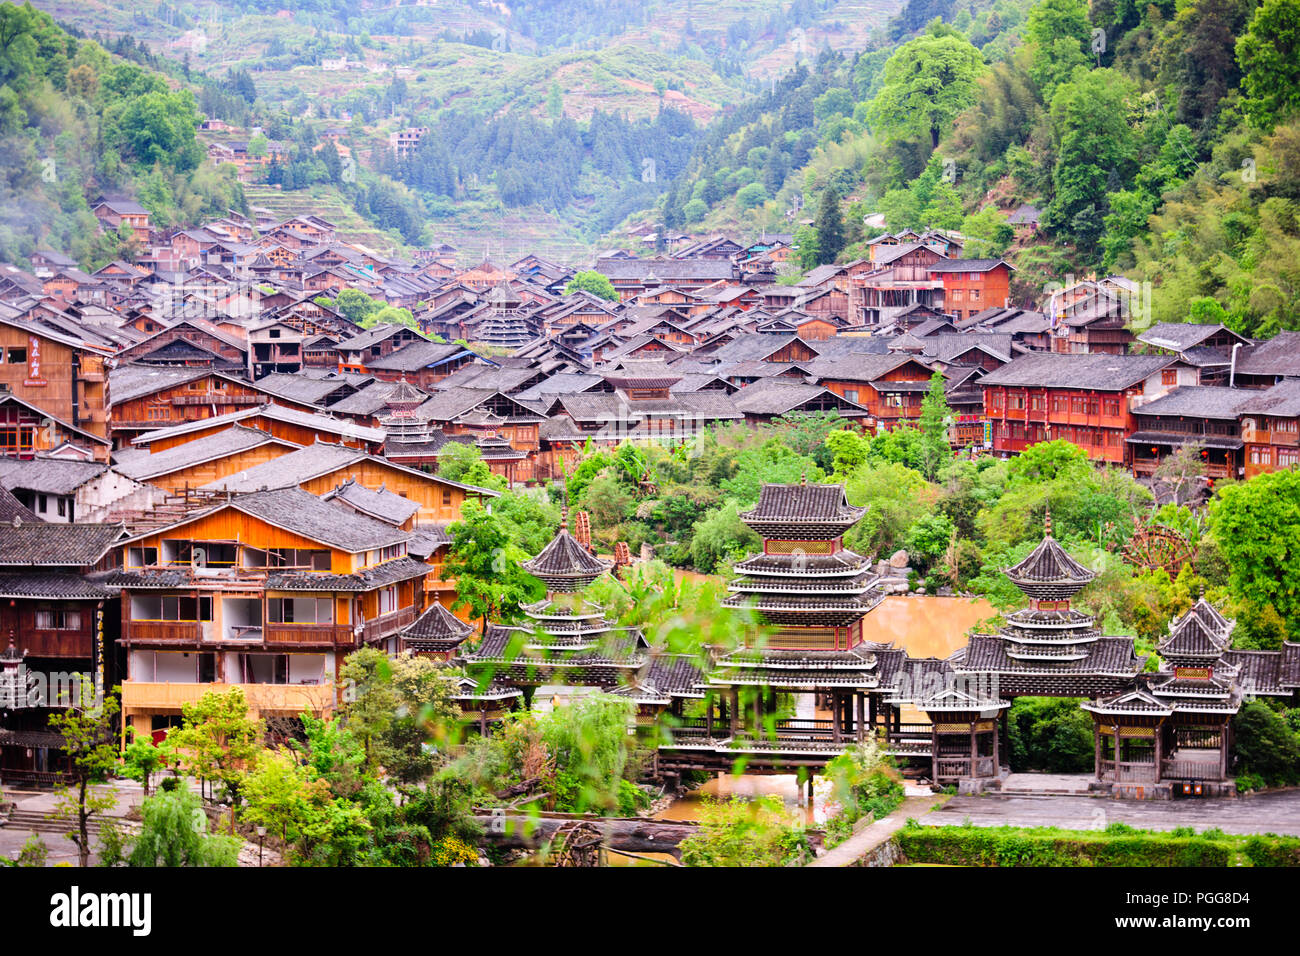 Dong Village,Ancient Architecture,Customs,Dress,Best Preserved in China,Zhaoxing Village,Guizhou Province,PRC,People's Republic of China,China Stock Photo